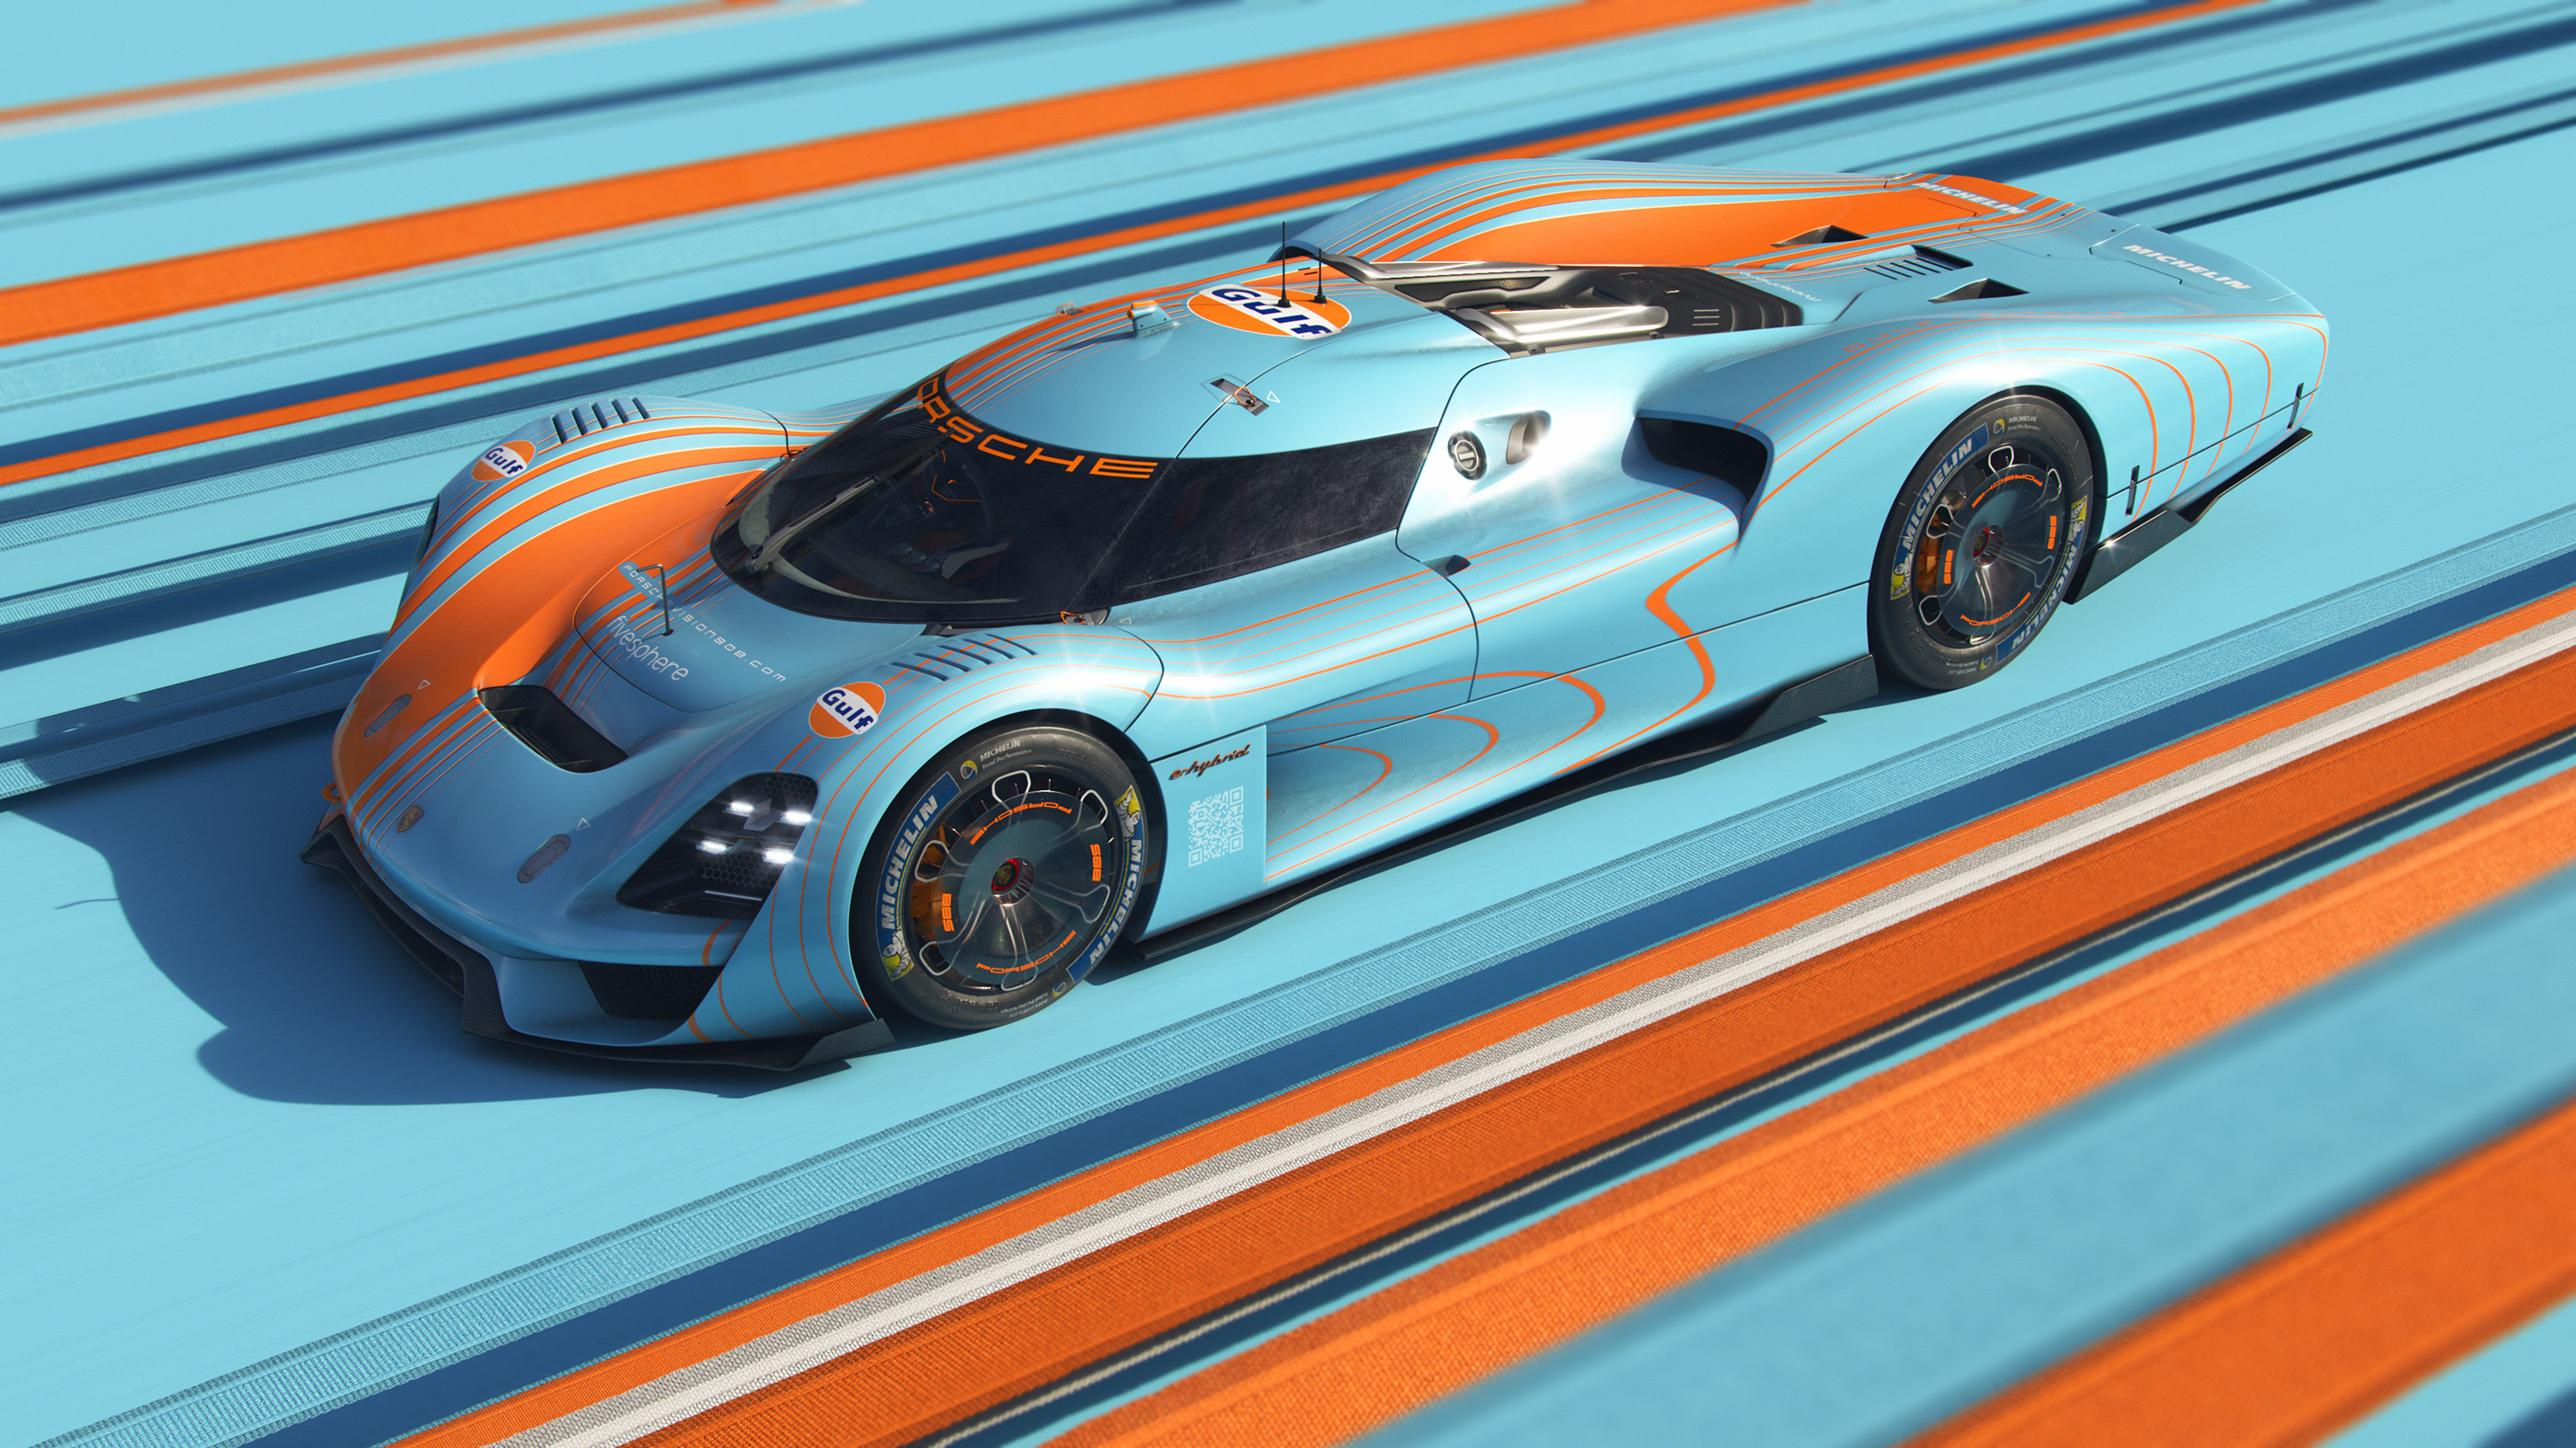 General 2800x1574 Porsche Porsche 908/04 gulf car concept car lines sports car CGI light blue orange vehicle Michelin